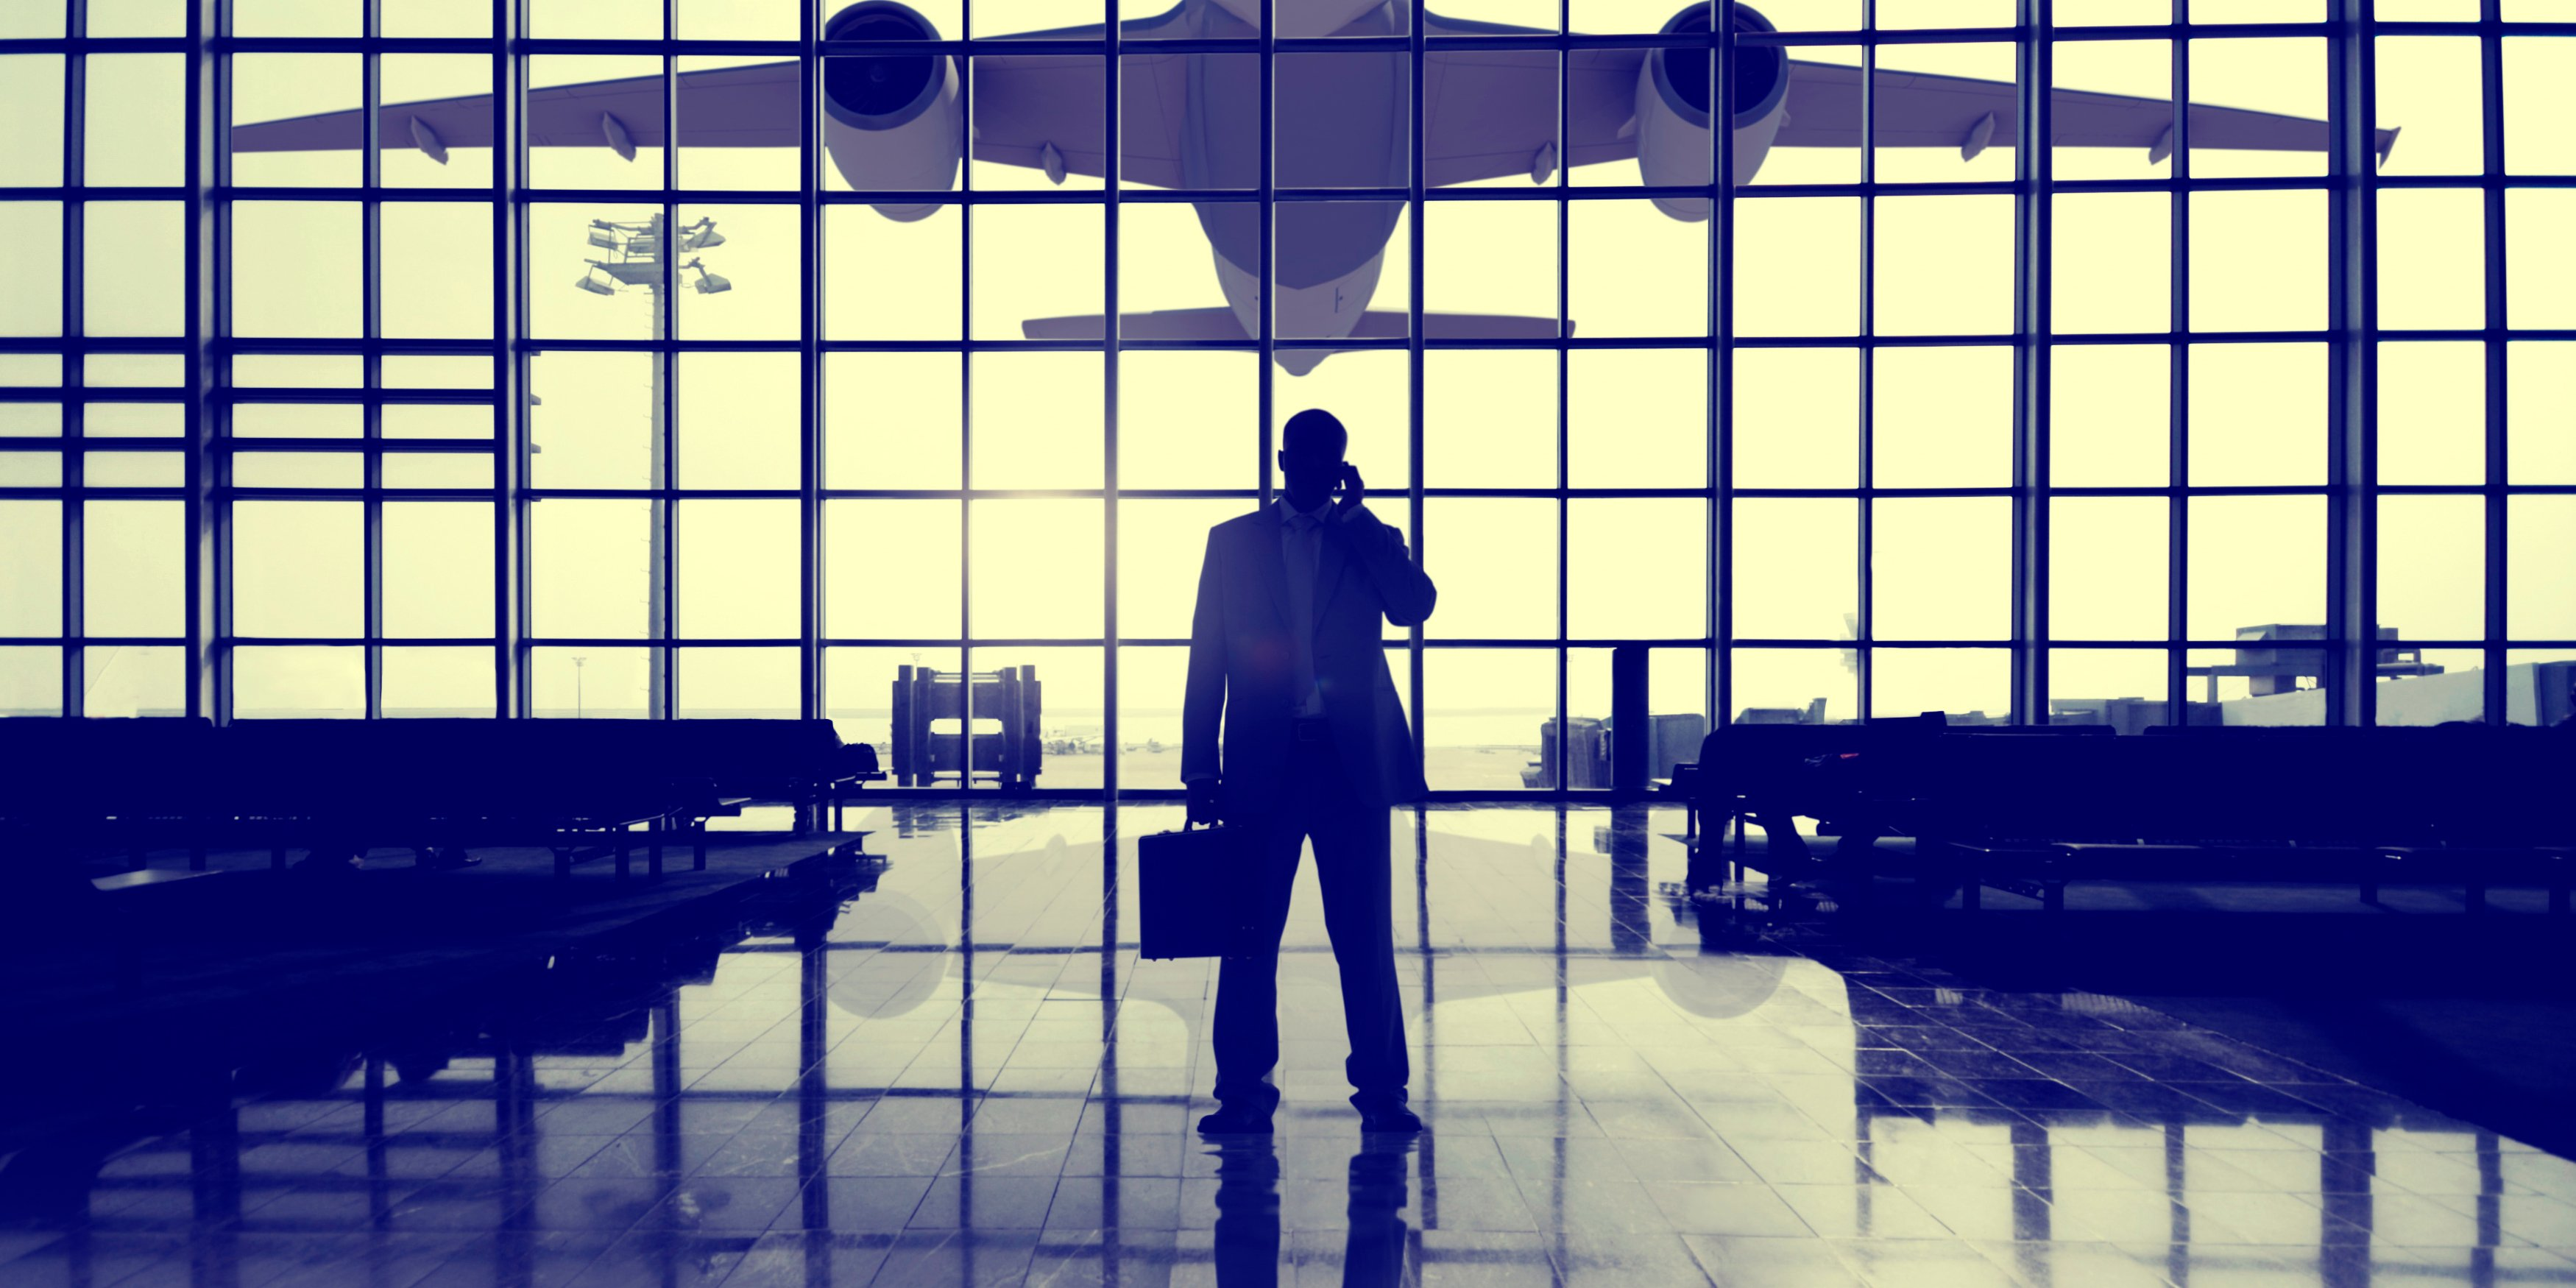 man-in-front-of-plane-in-air-port